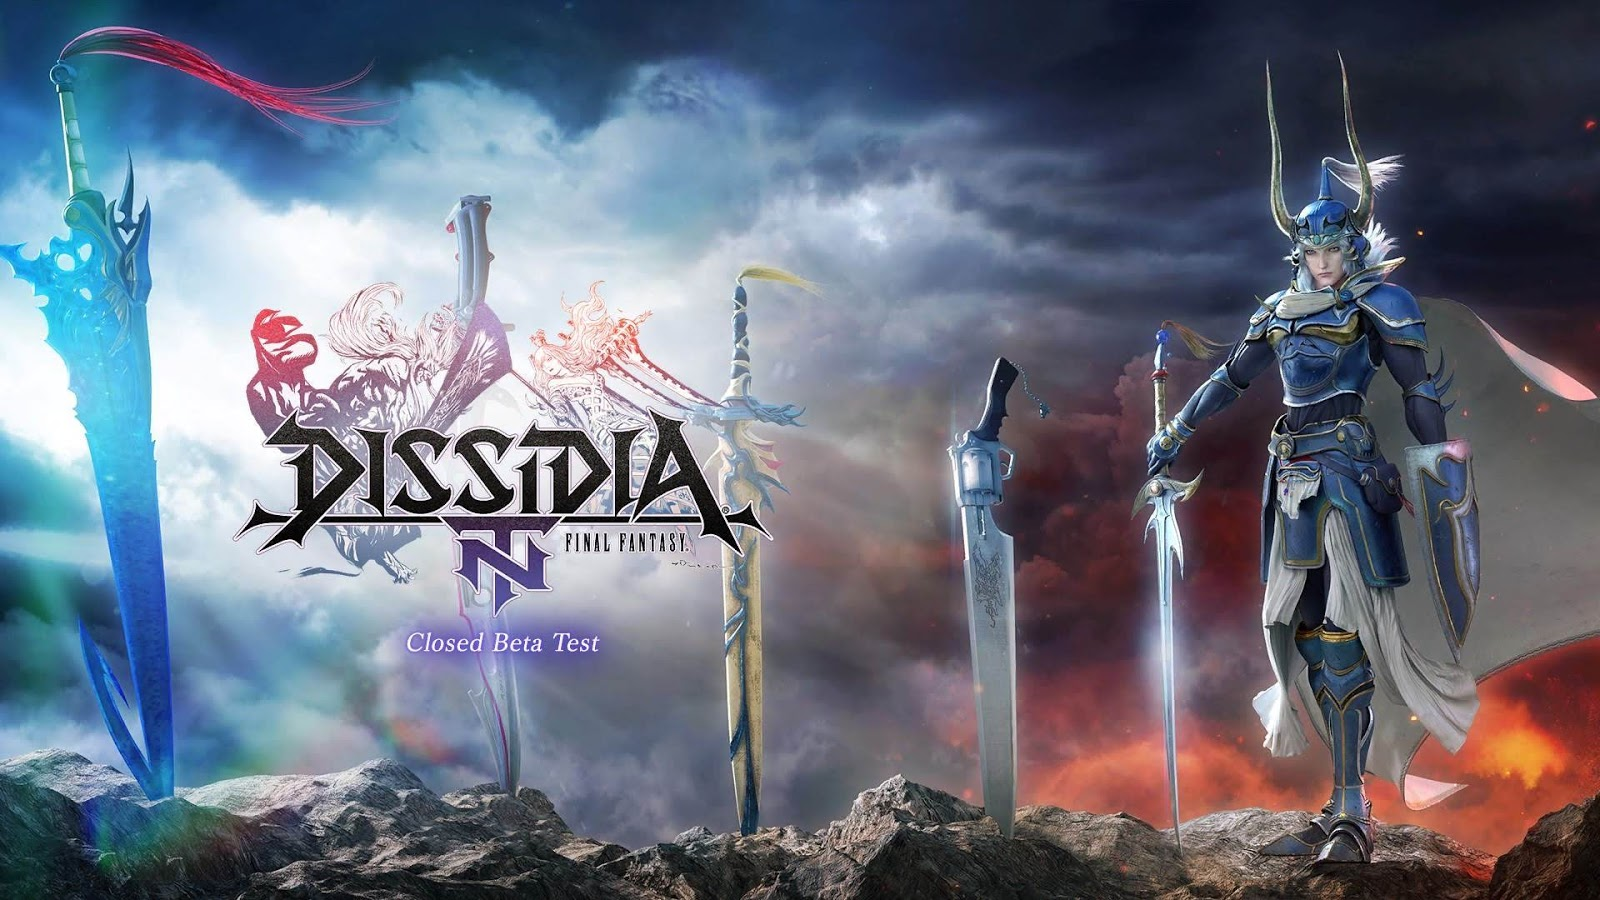 dissidia-final-fantasy-nt-deluxe-edition